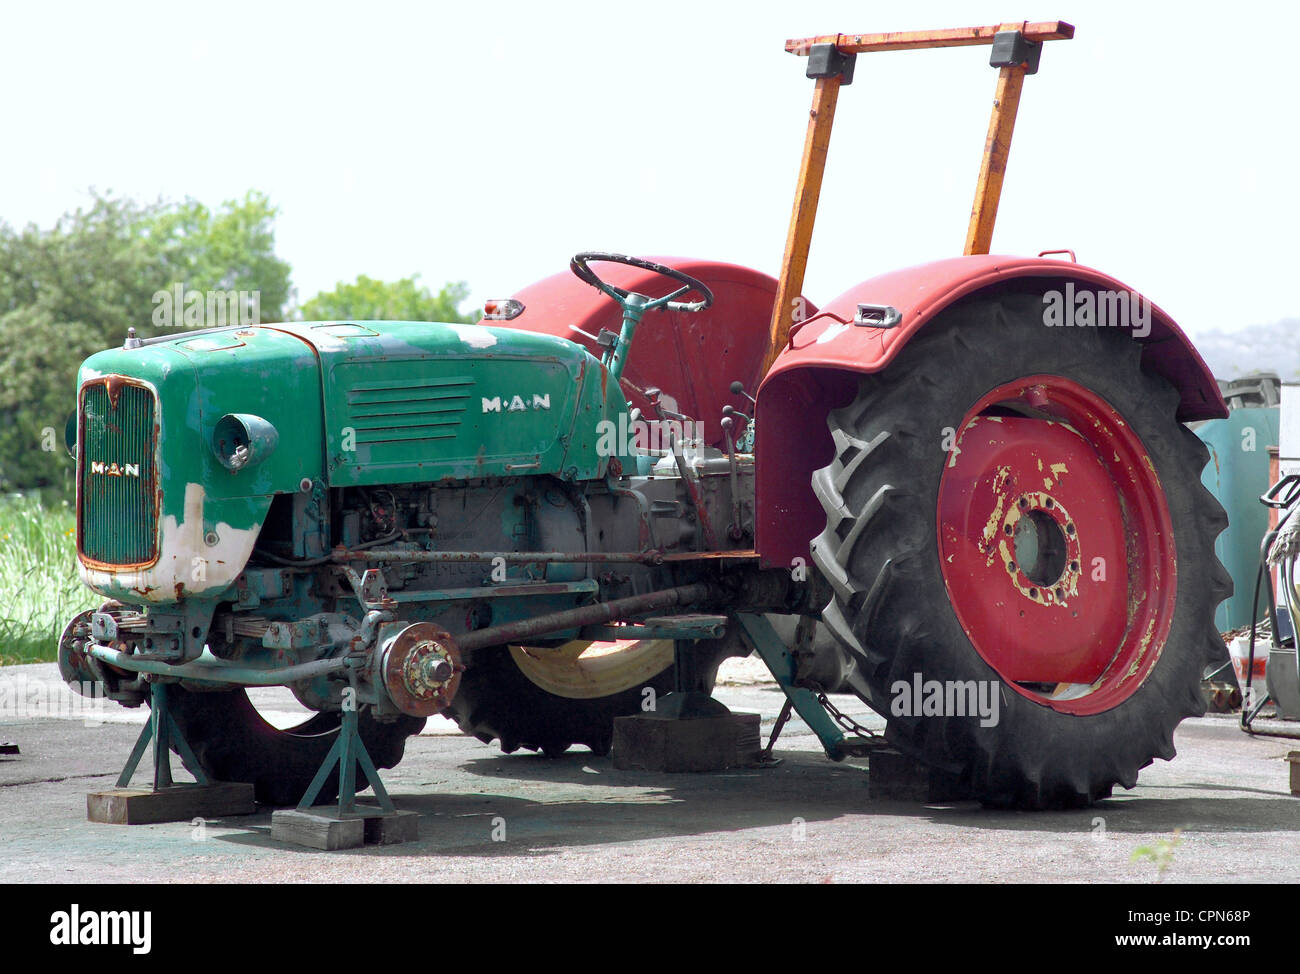 Guy Fixing Tractor : Agriculture machine man tractor from jack up